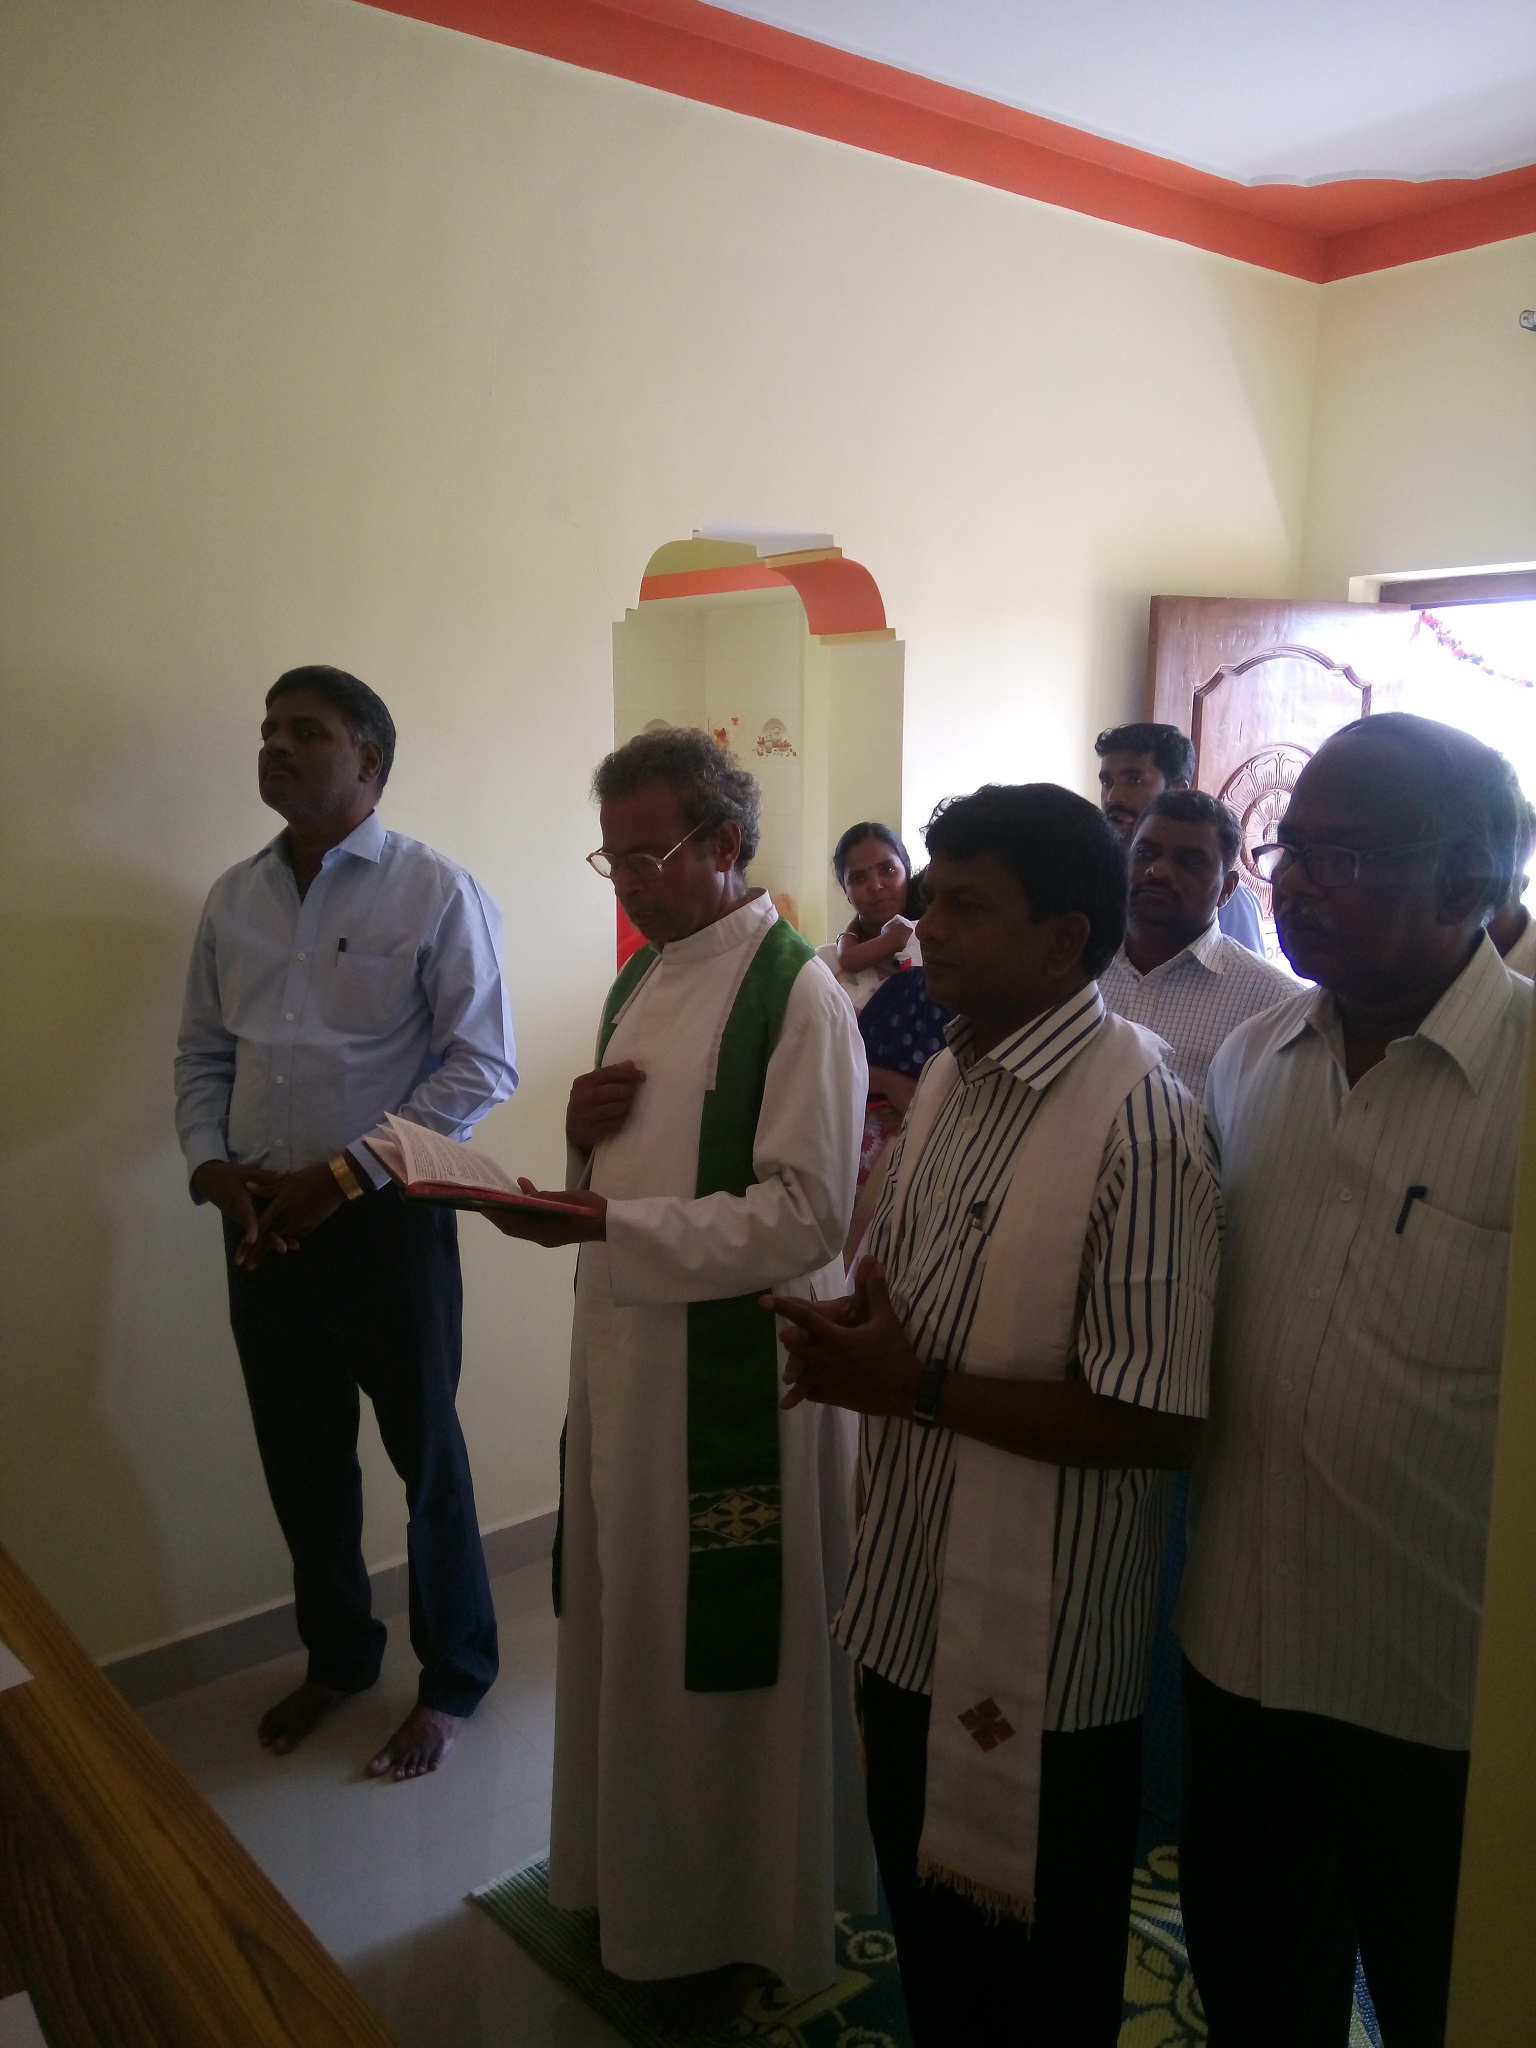 Prayer and blessings by Rev. Durai Raj and Fr. Clement Rosario.